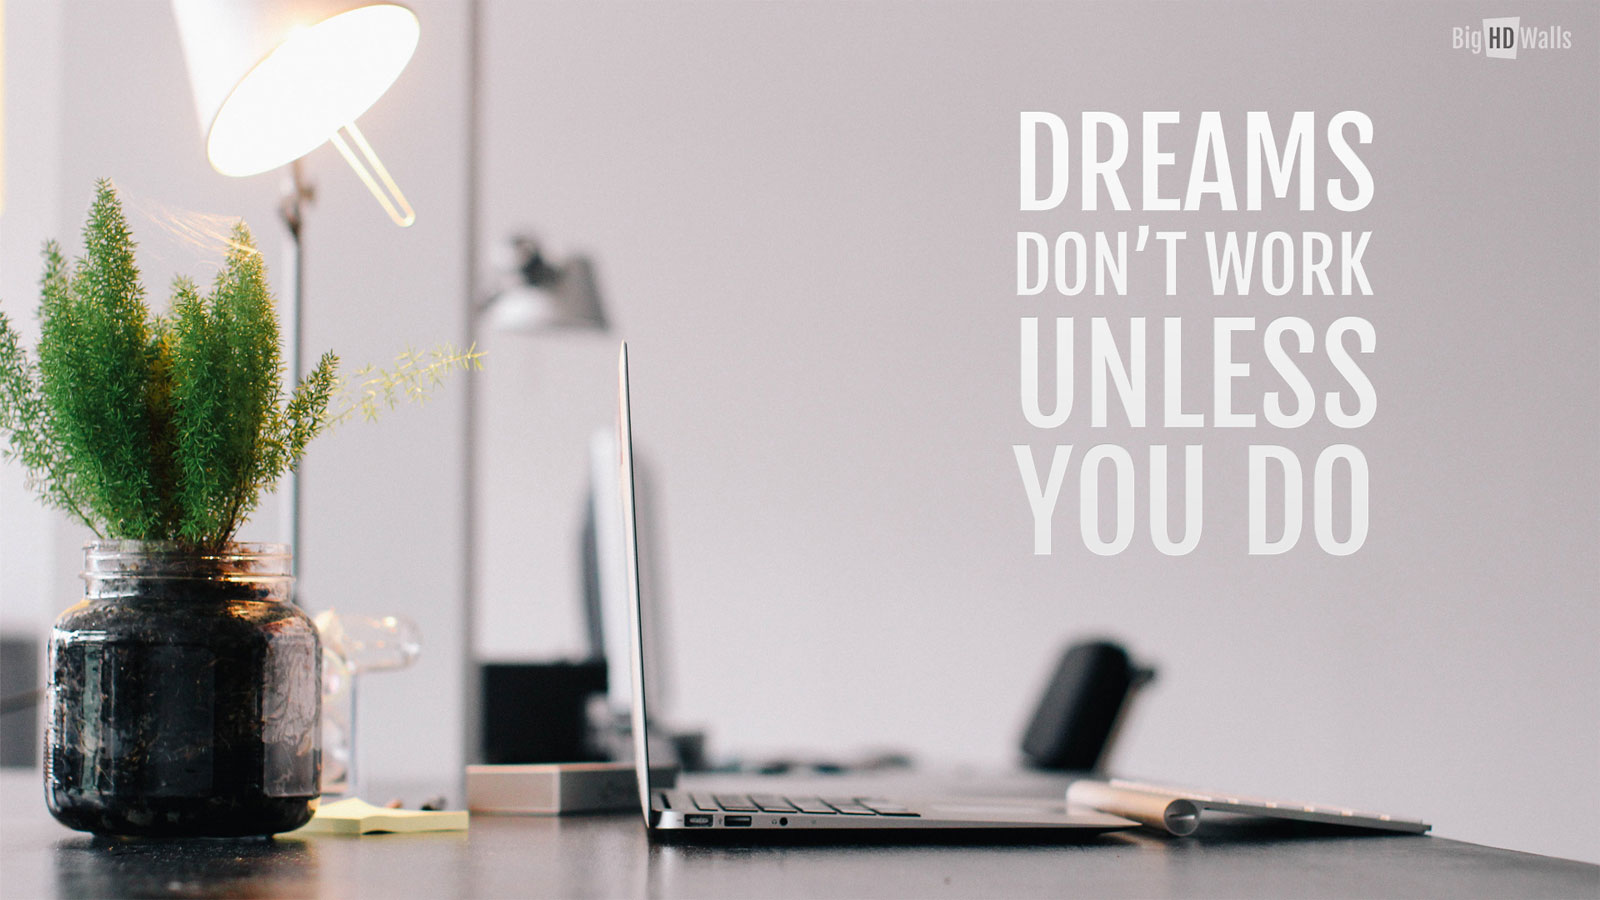 Beautiful Life Wallpapers With Quotes 115 Best Motivational Wallpaper Examples With Inspiring Quotes